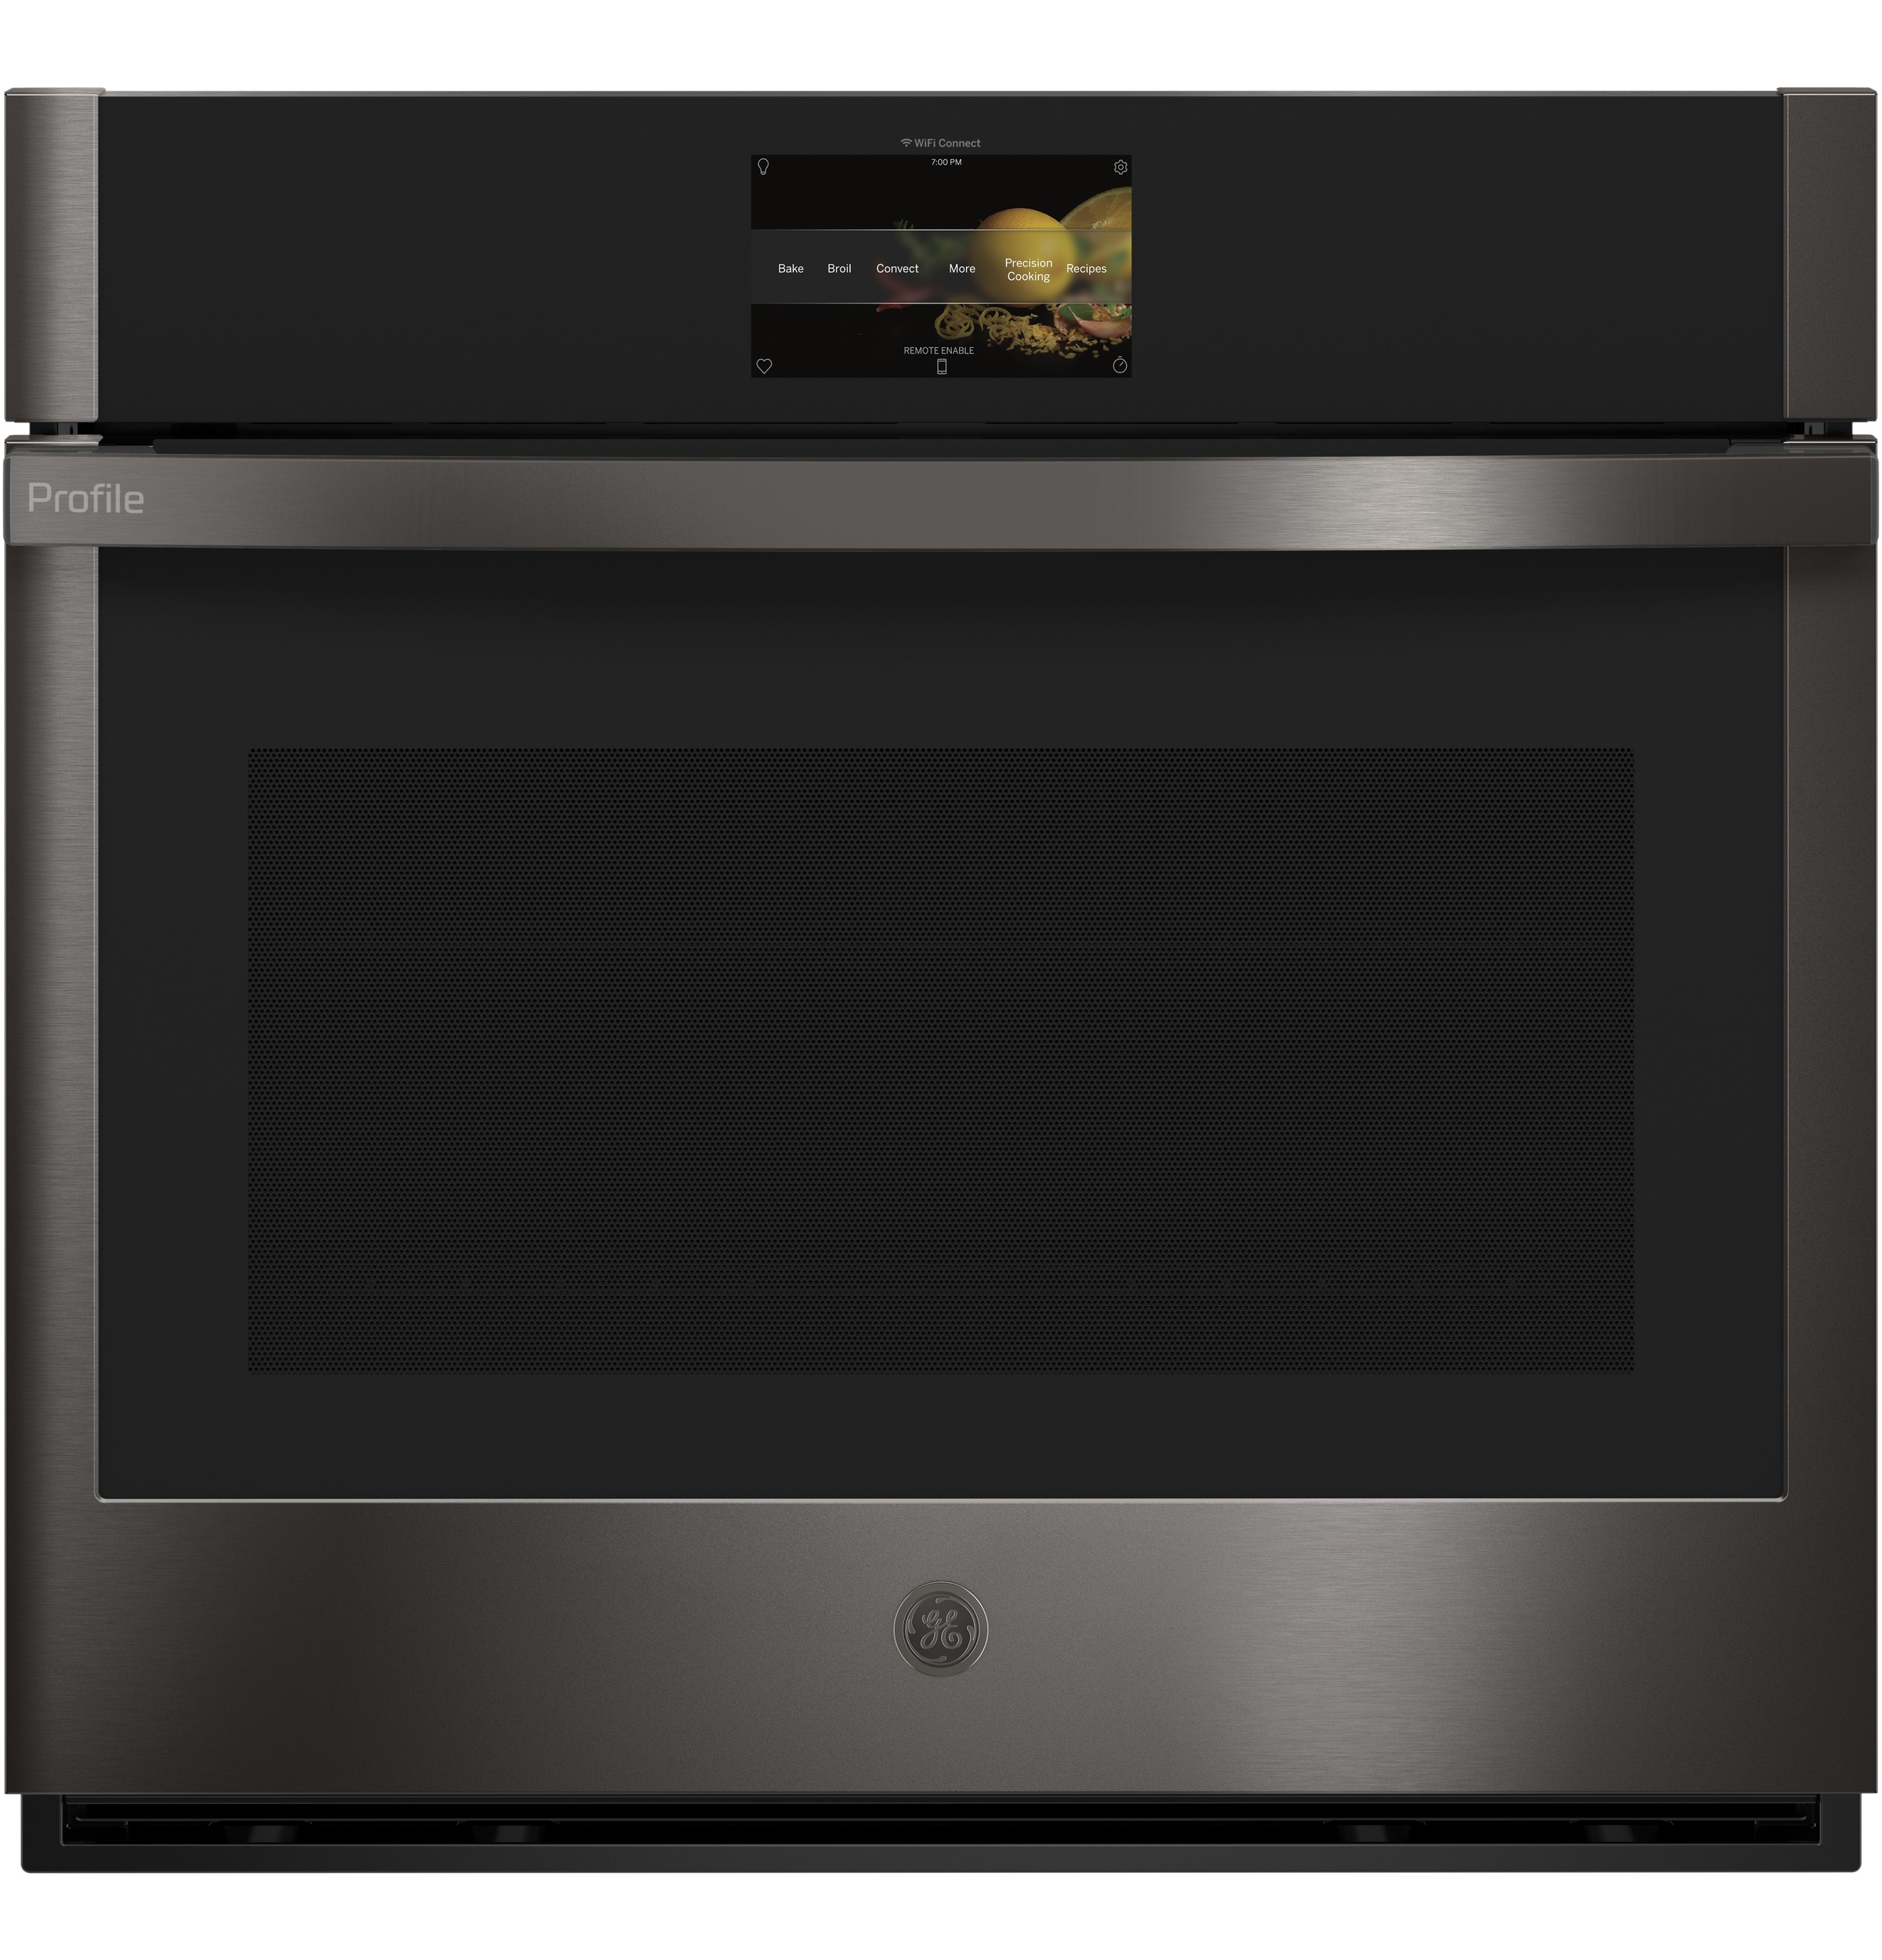 "GE Profile GE Profile™ 30"" Smart Built-In Convection Single Wall Oven"